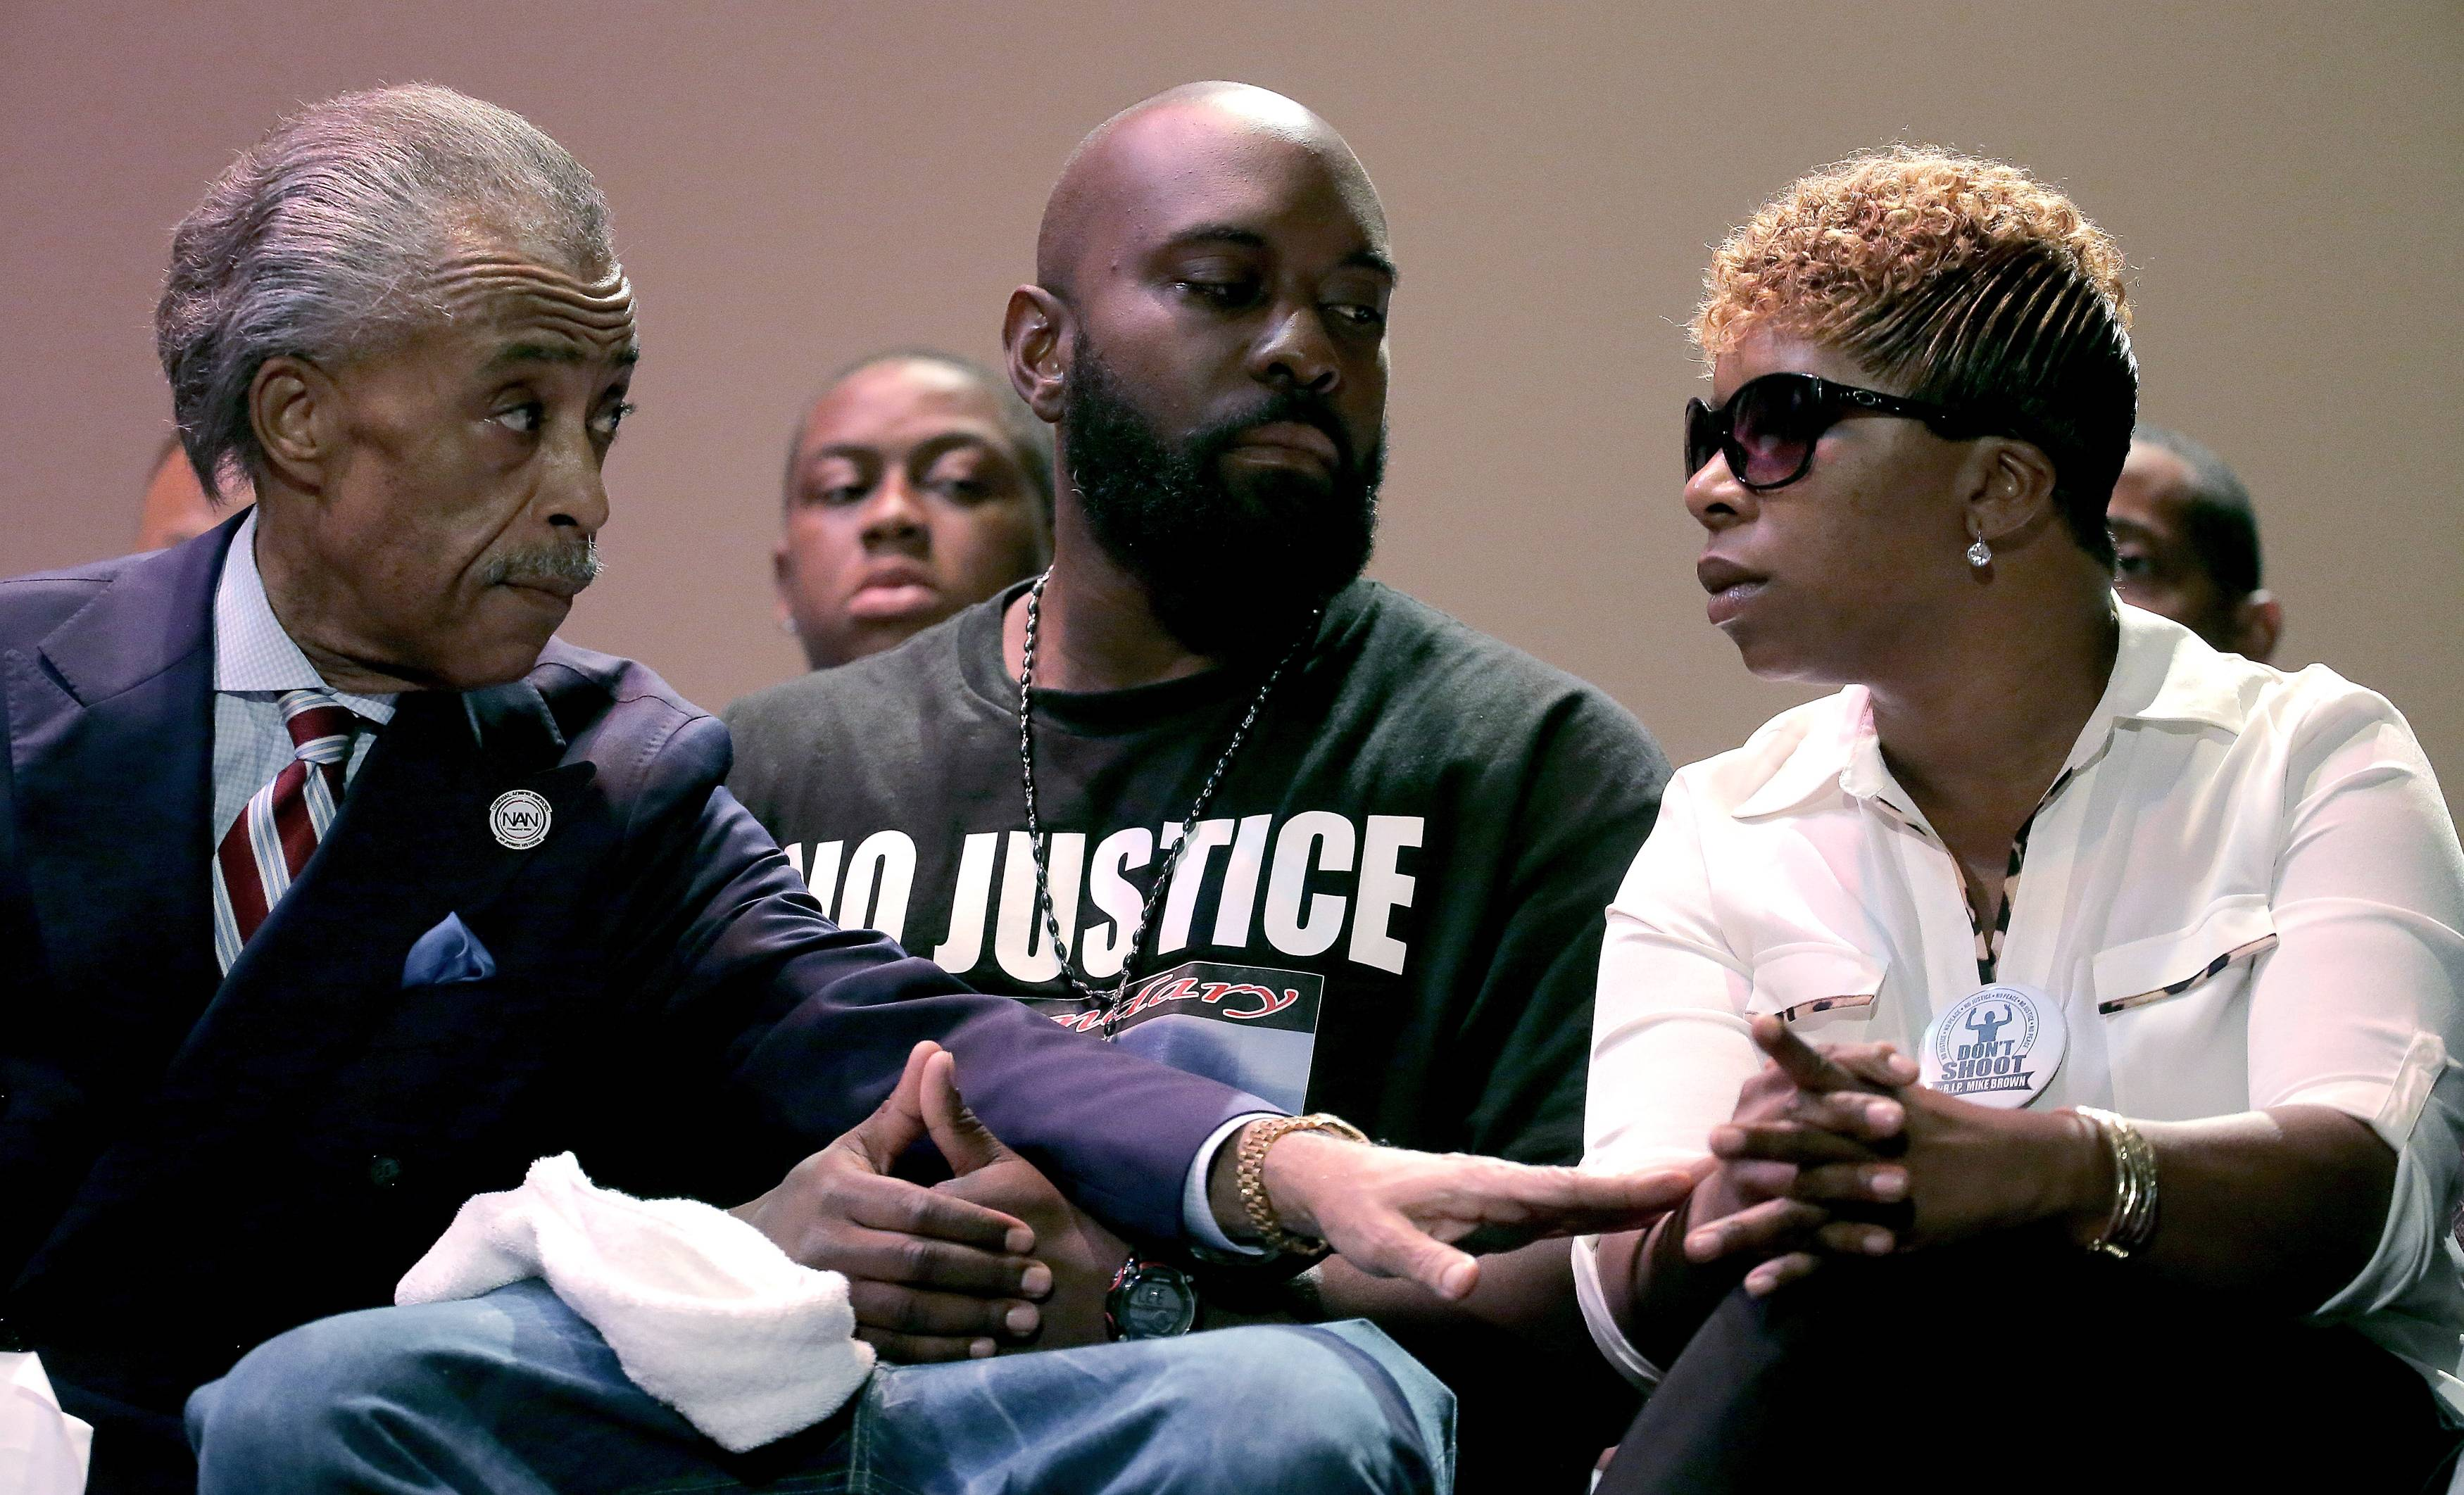 Rev. Al Sharpton speaks with parents of Michael Brown, Michael Brown Sr. and Lesley McSpadden during a rally Sunday at Greater Grace Church for their son who was killed by police last Saturday in Ferguson, Mo. Brown's shooting in the middle of a street, following a suspected robbery of a box of cigars from a nearby market, has sparked a week of protests, riots and looting in the St. Louis suburb.